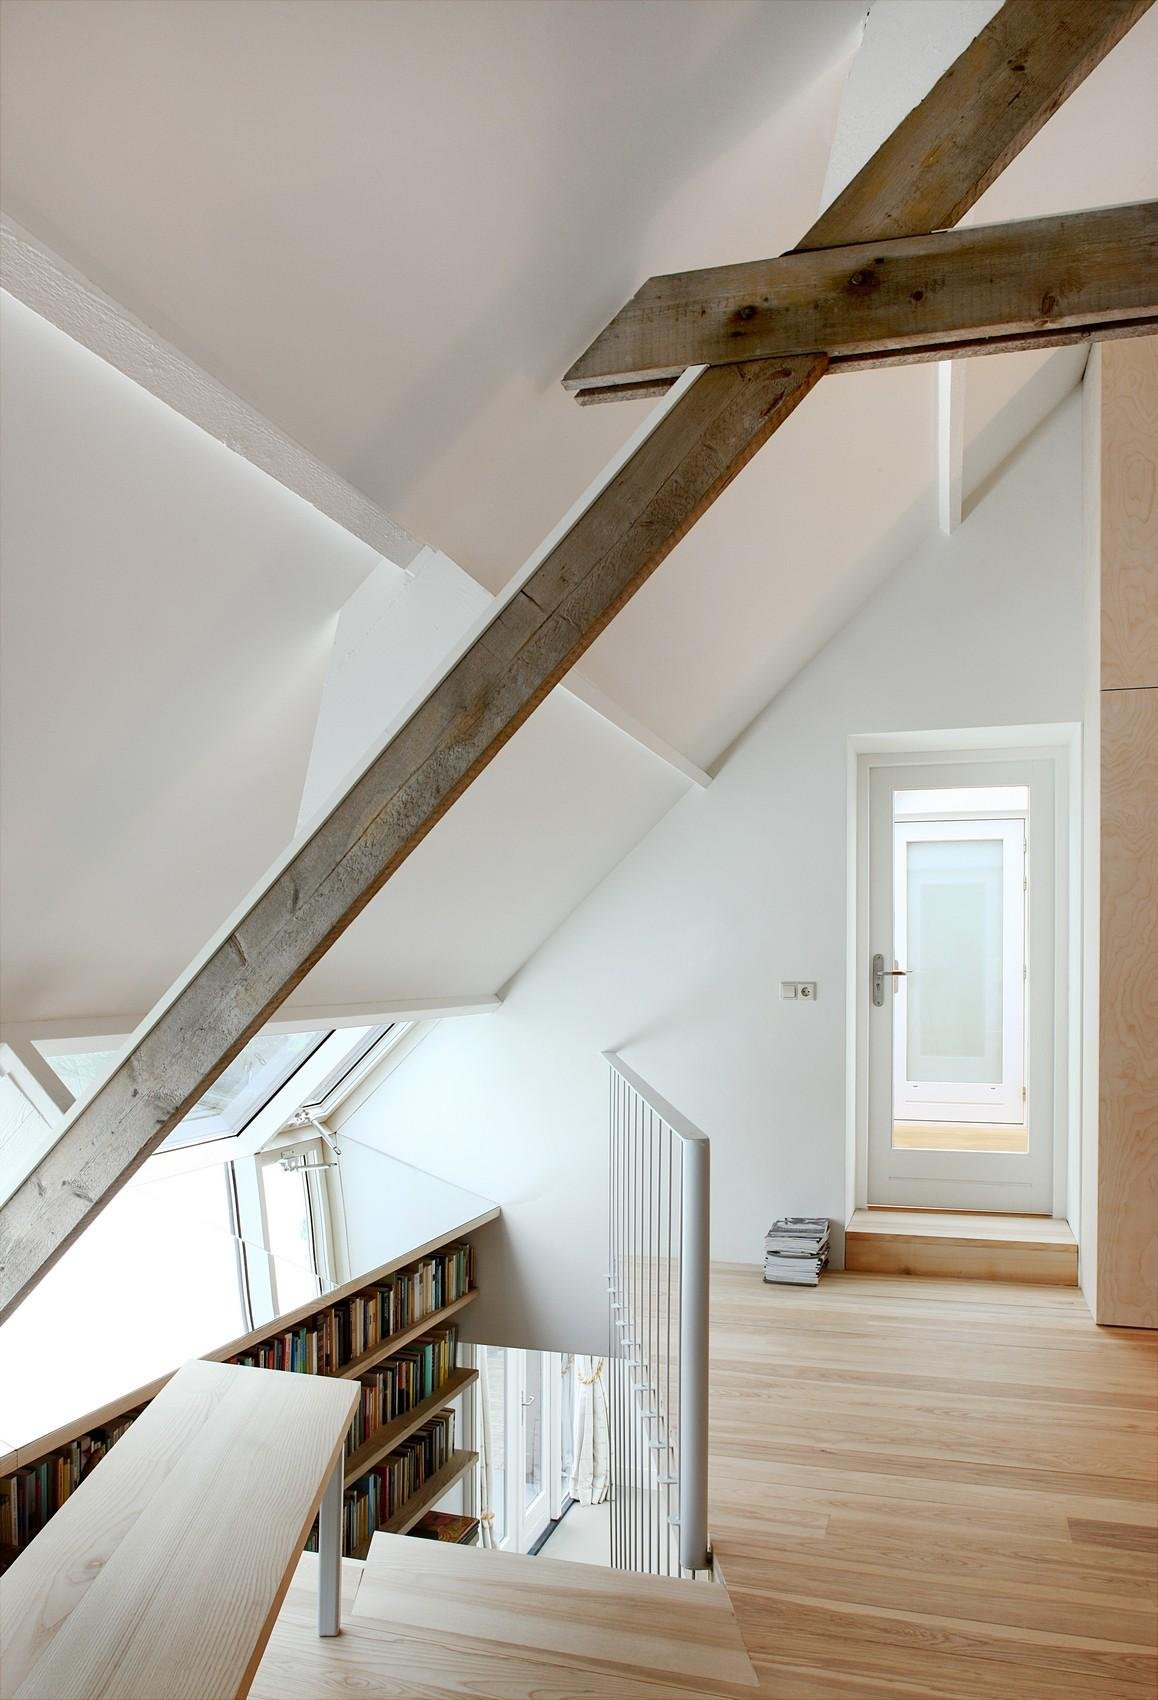 Bookshelf, Barn Conversion in Geldermalsen, The Netherlands